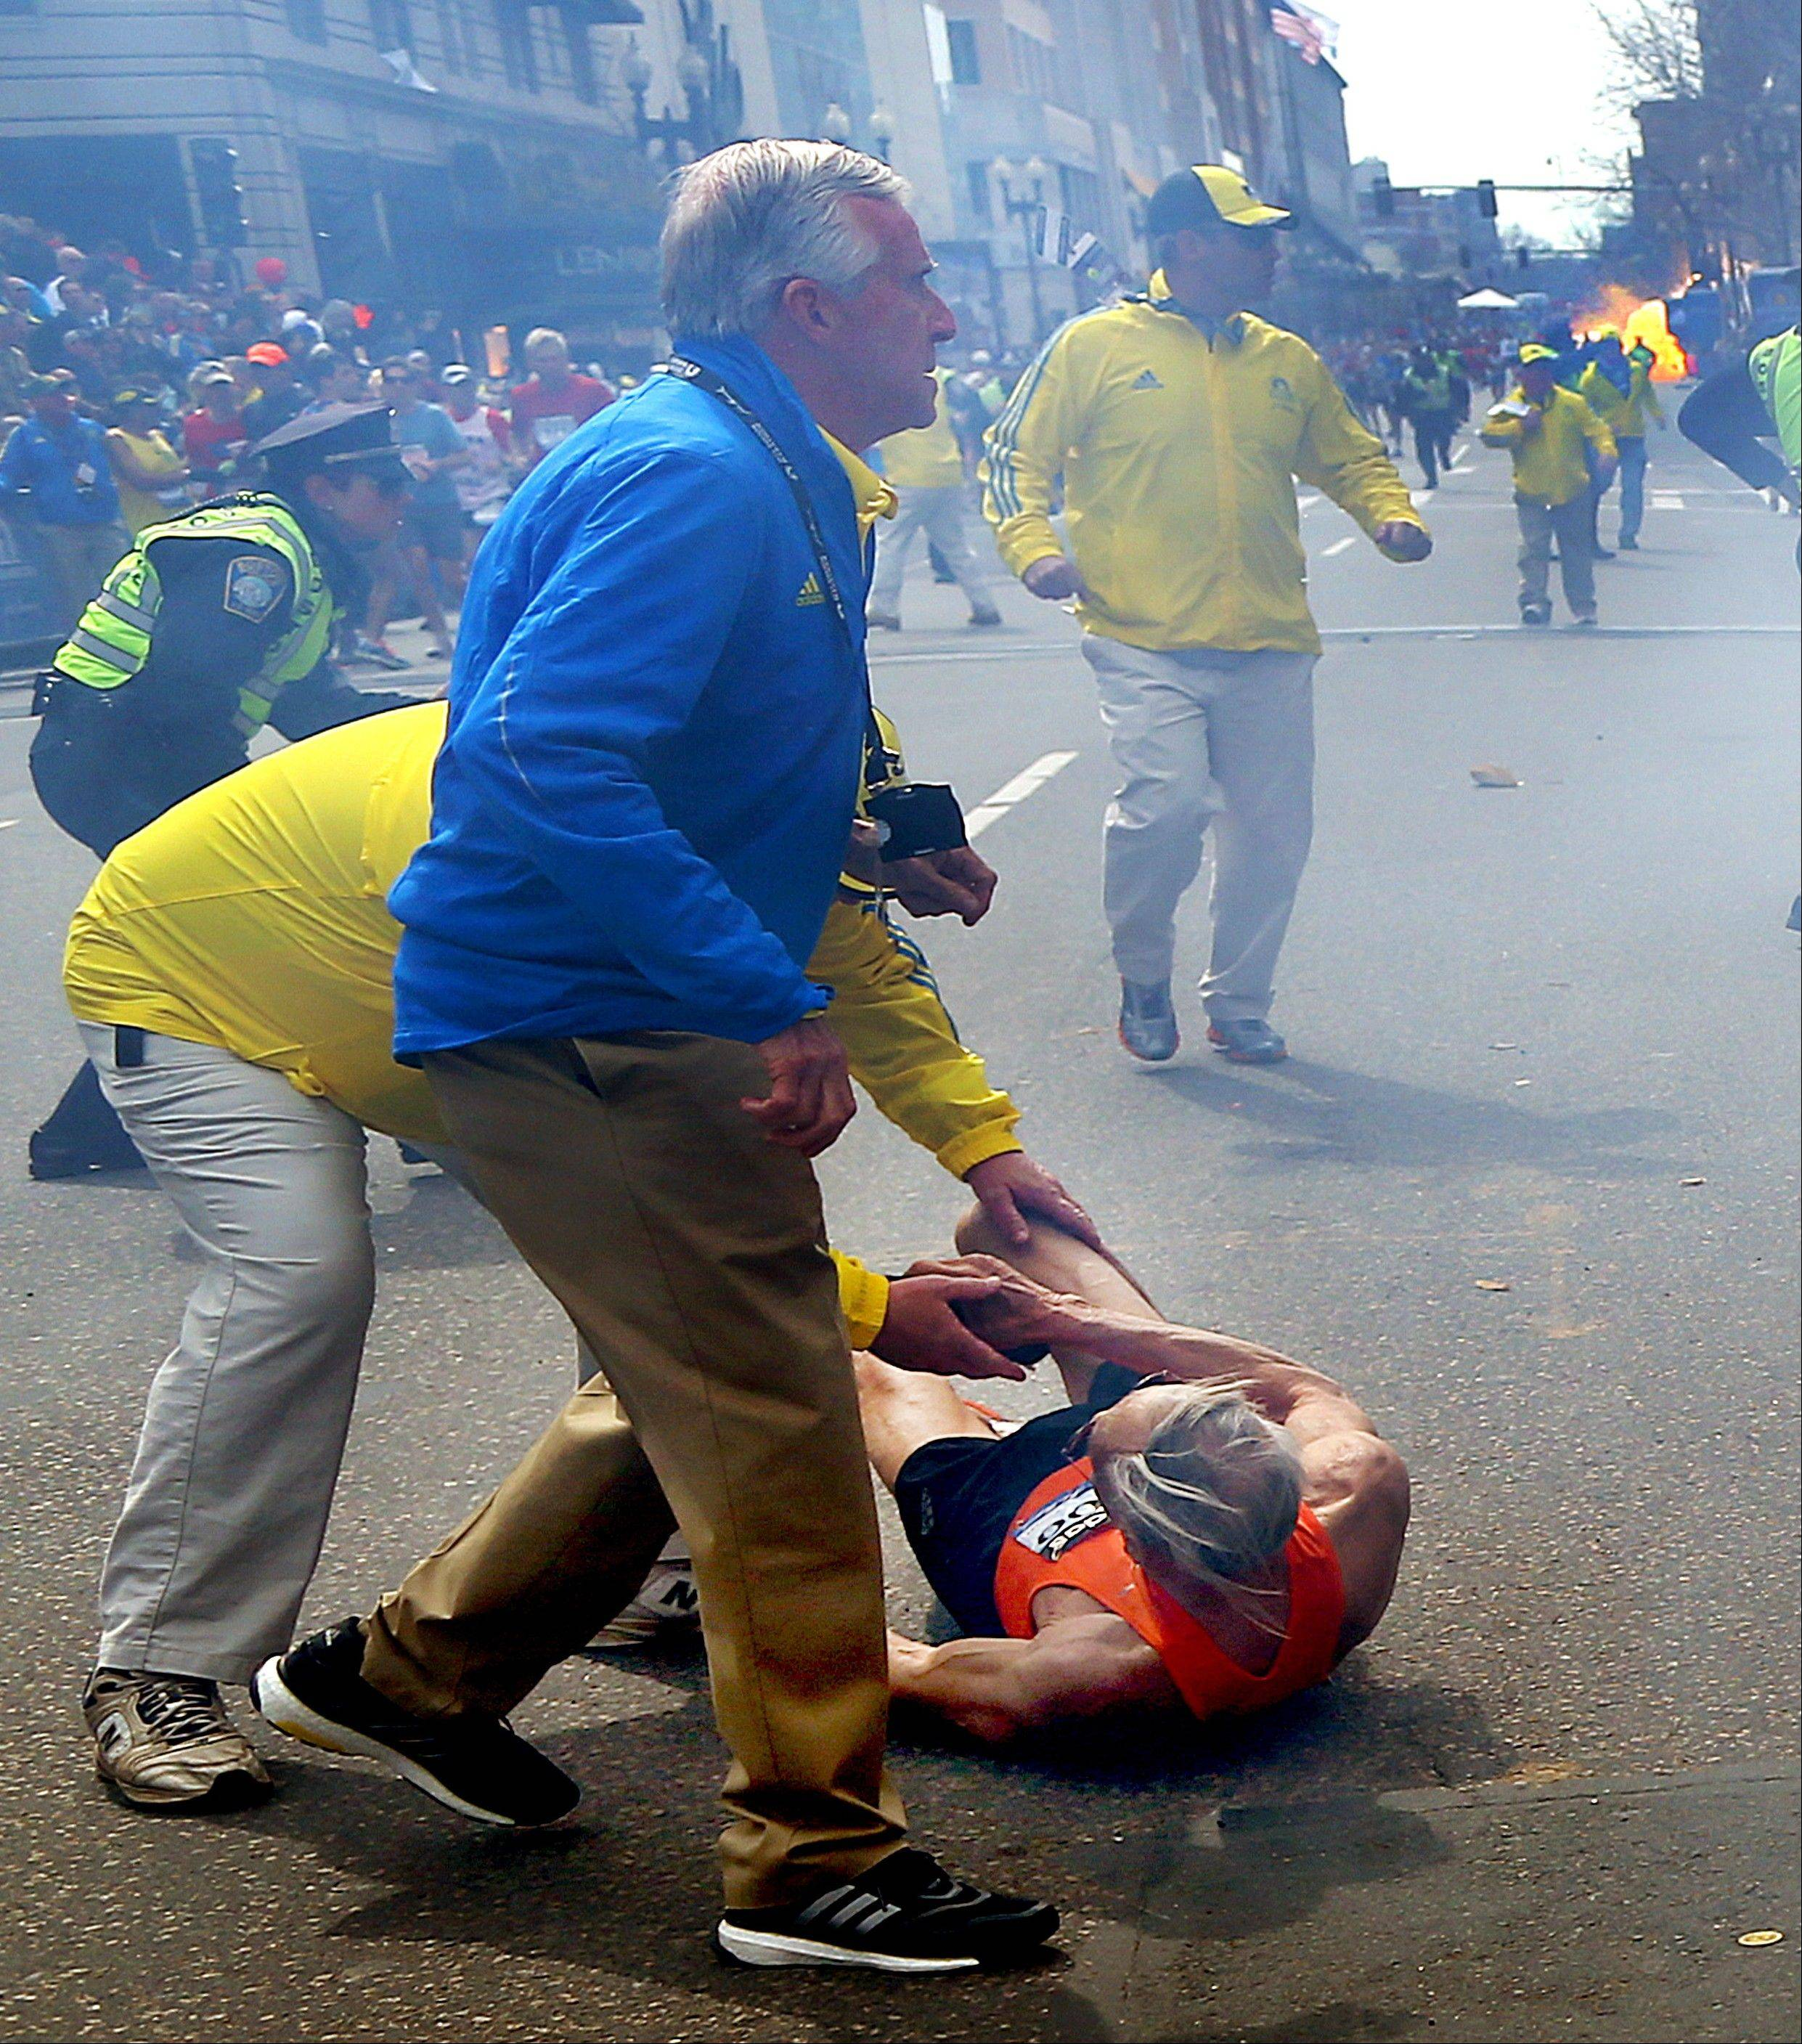 People react to a second explosion at the Boston Marathon Monday afternoon. Authorities ran out on the course to carry off the injured while the stragglers were rerouted away from the smoking site of the blasts.